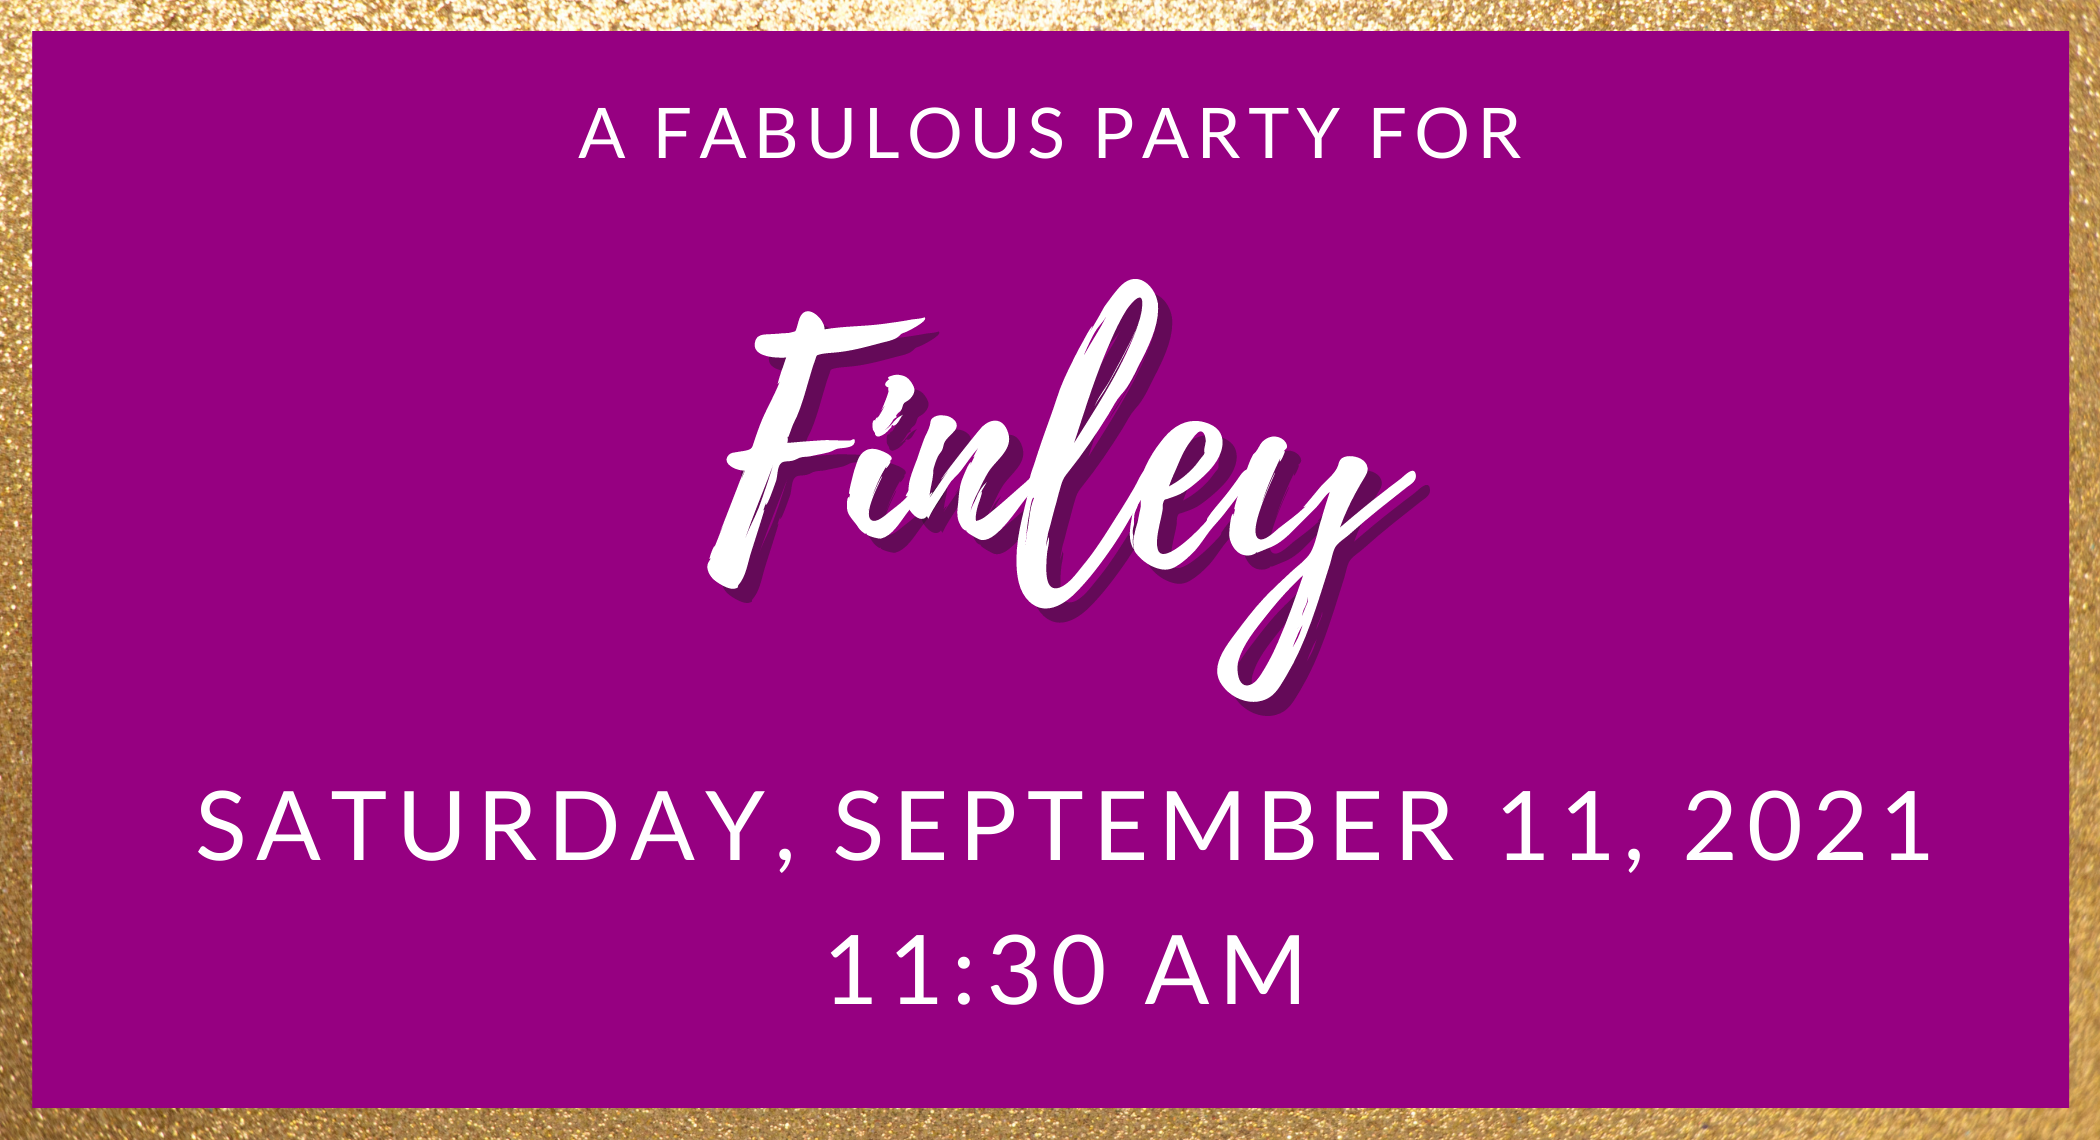 A Fabulous Party For